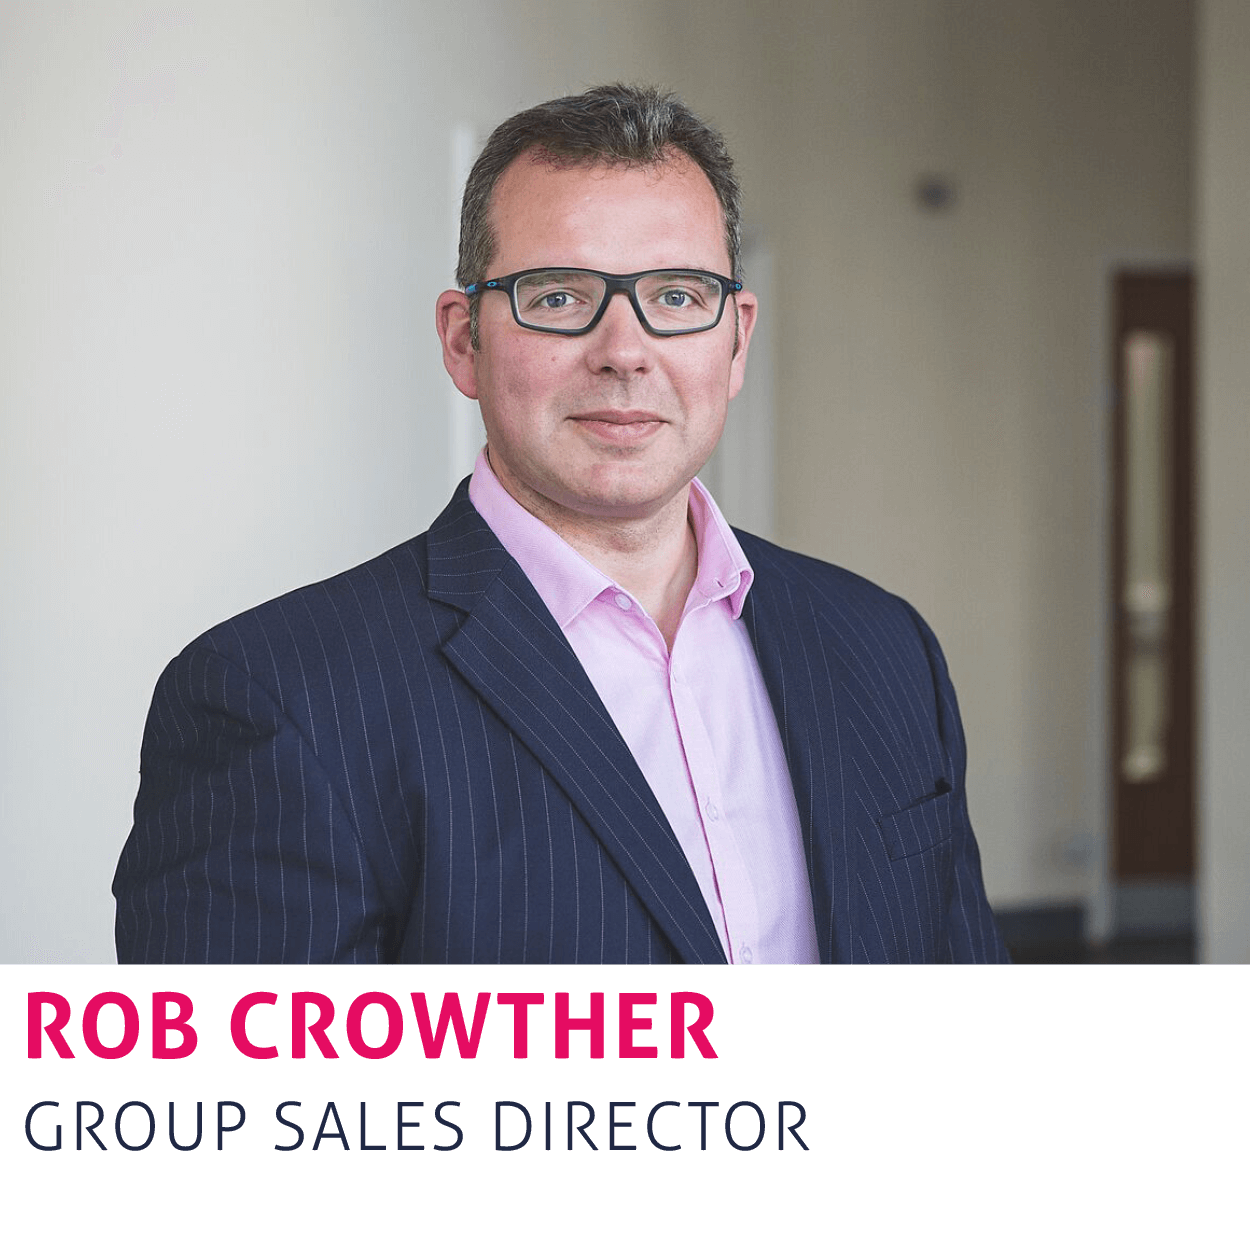 Rob Crowther, Group Sales Director